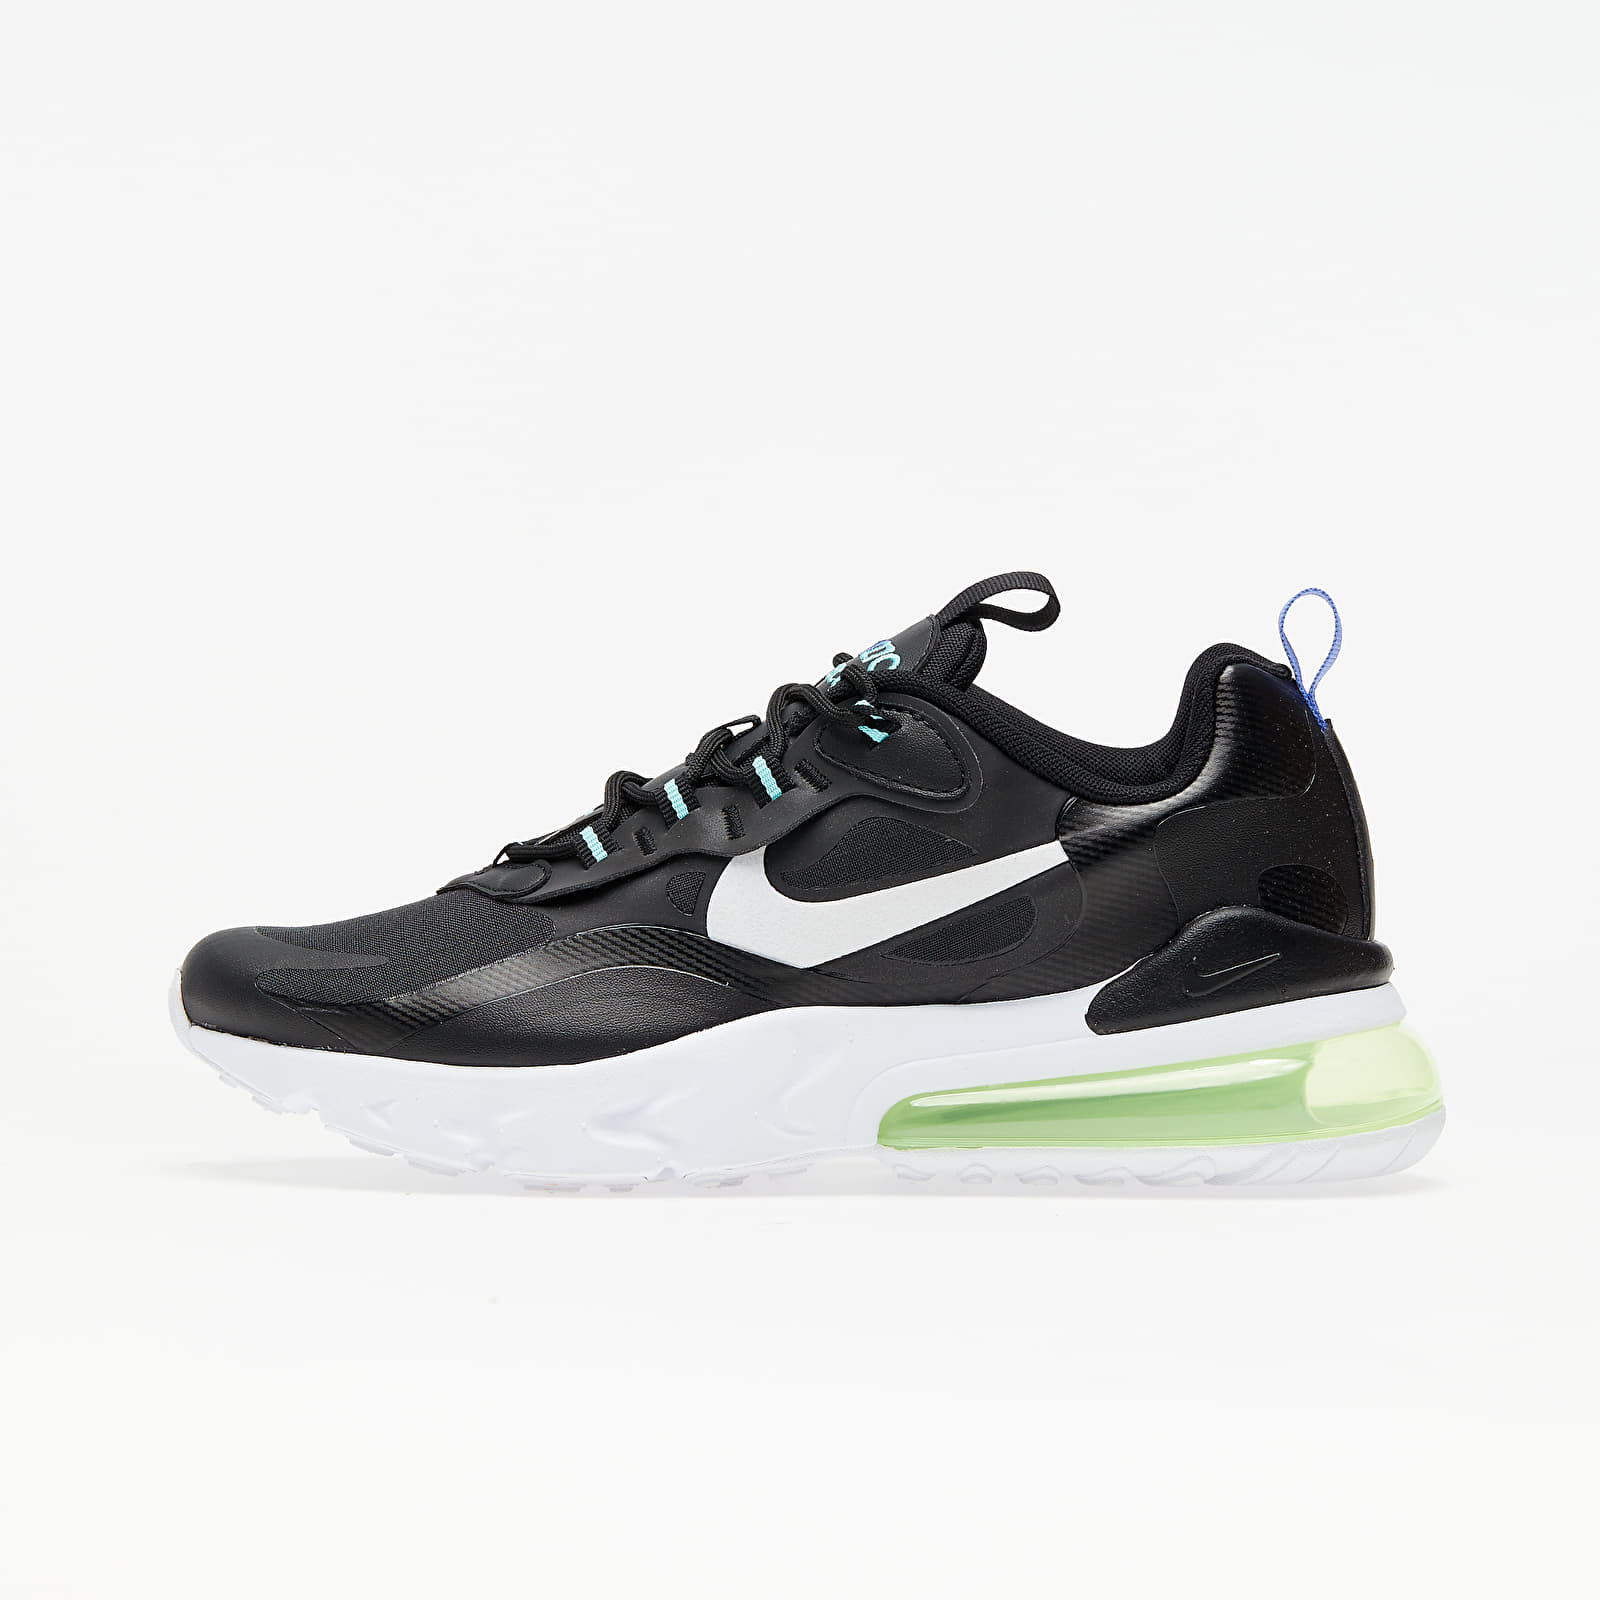 Nike Air Max 270 React GS Black/ White-Laser Orange-Aurora Green EUR 37.5